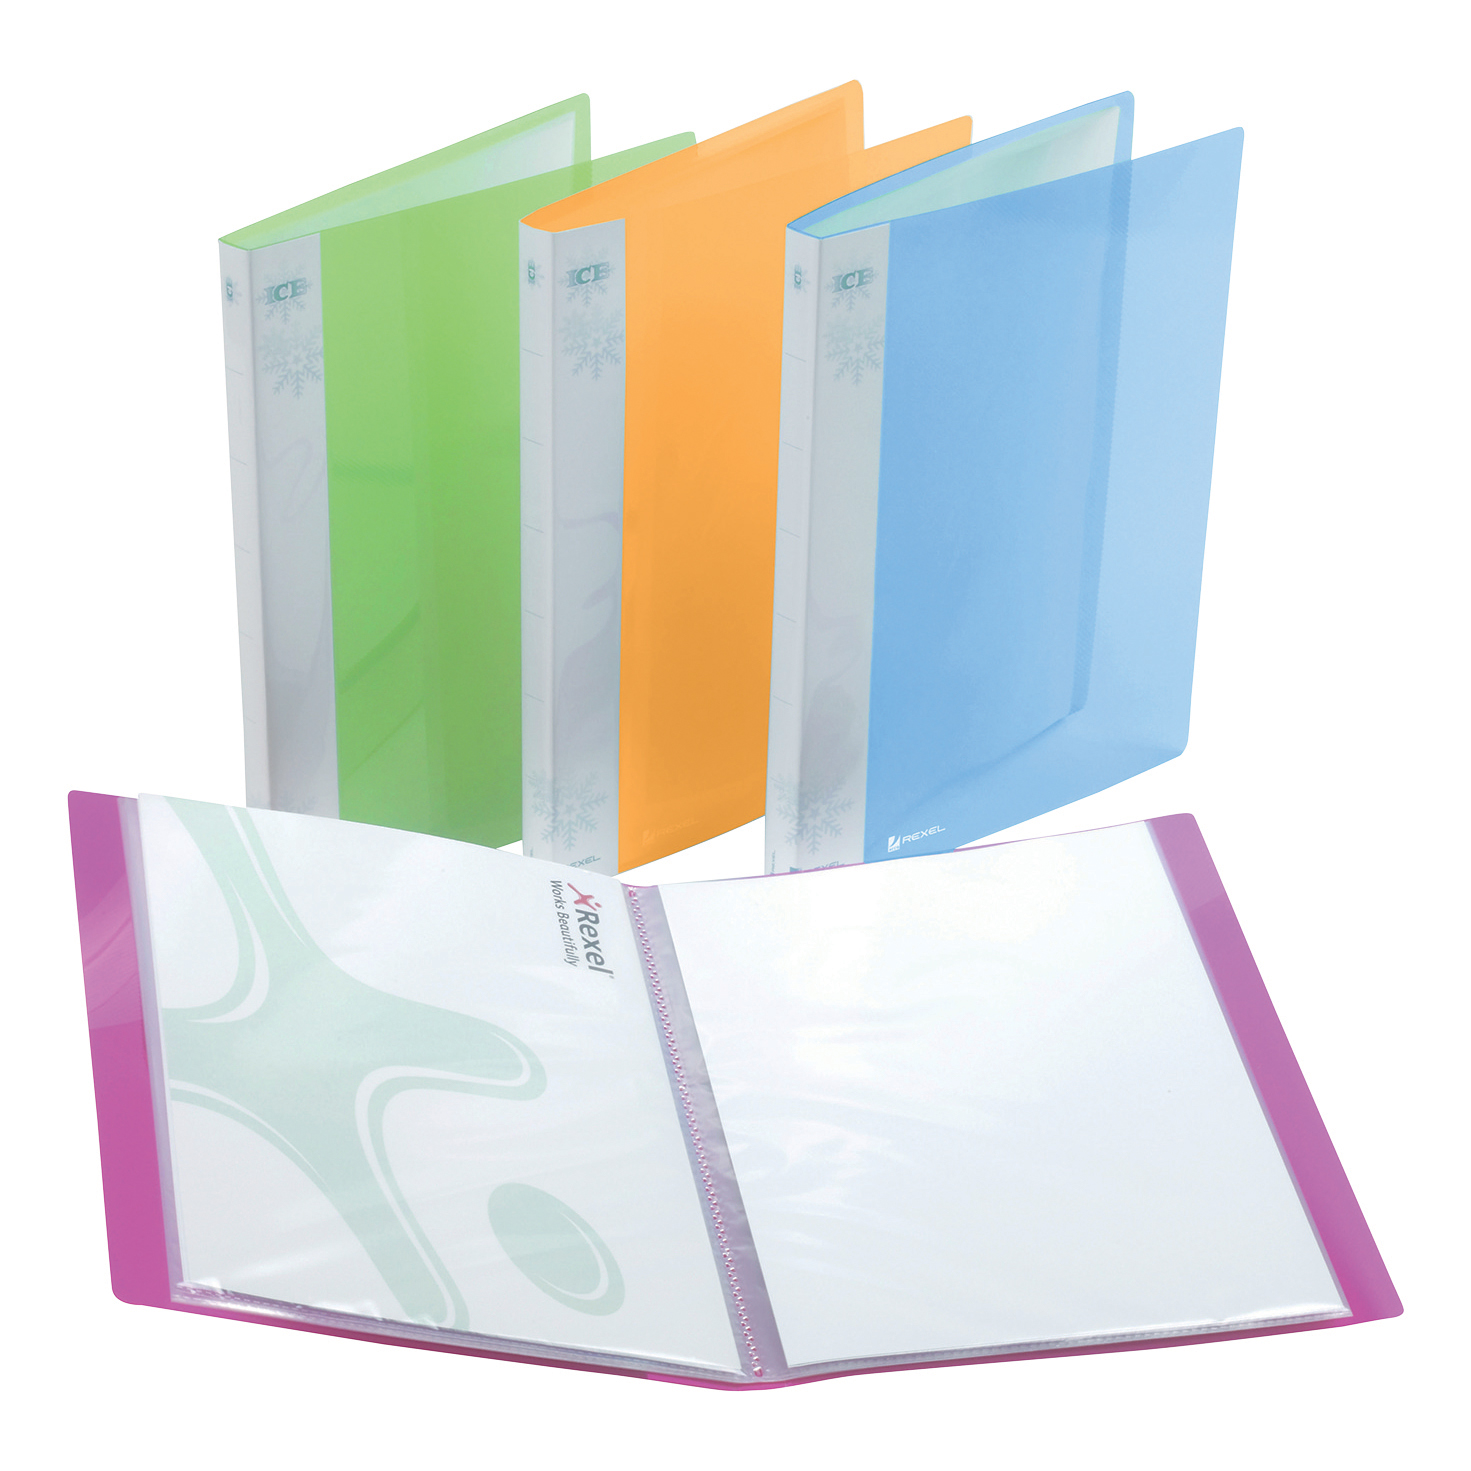 Rexel Ice Display Book Polypropylene 20 Pockets A4 Assorted Ref 2102038 Pack 10